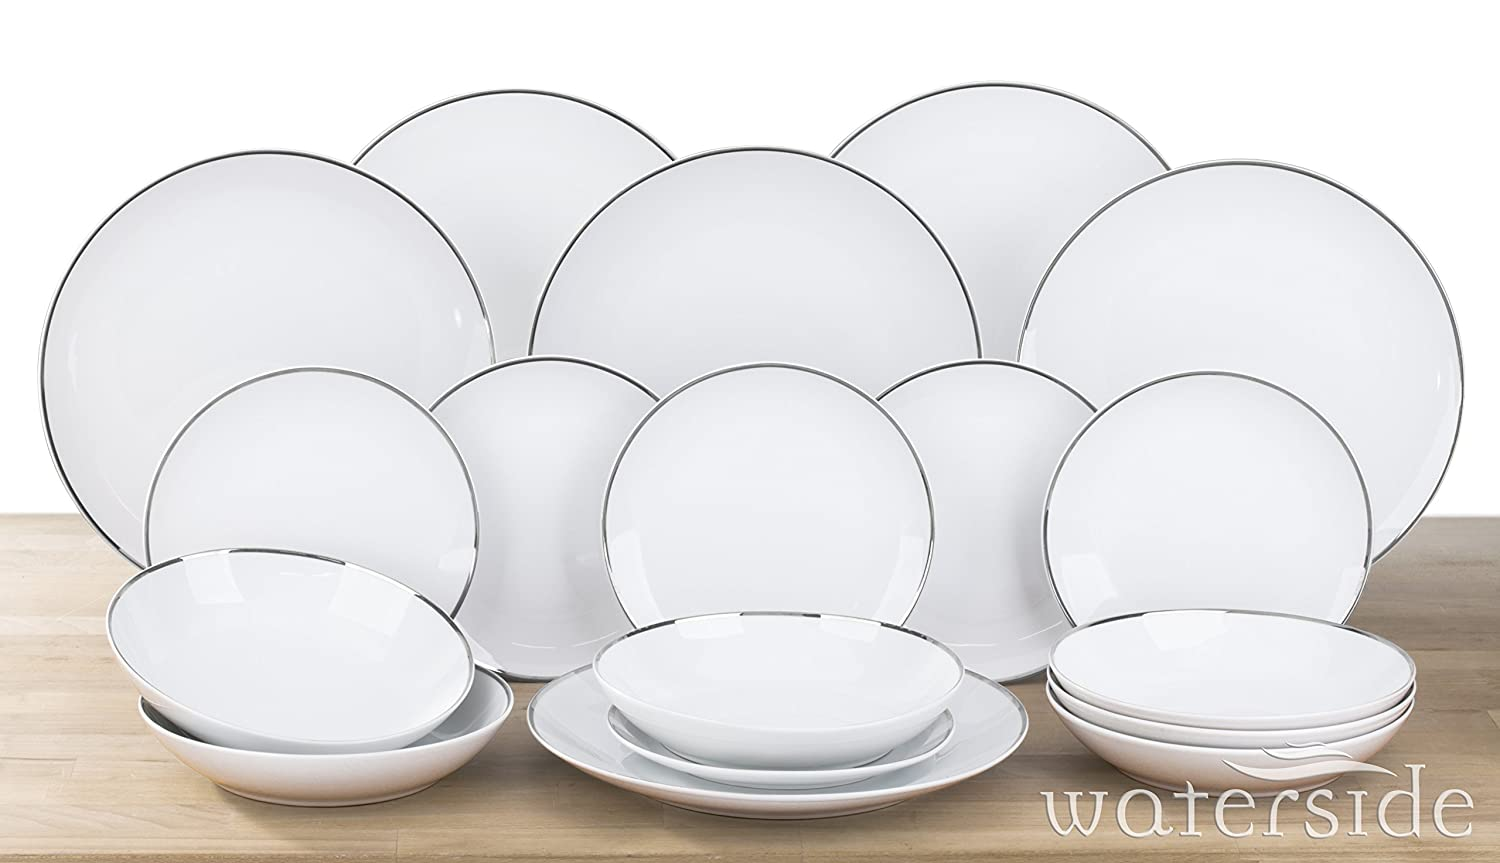 18 Piece Platinum Band Dinner Set Waterside Fine China